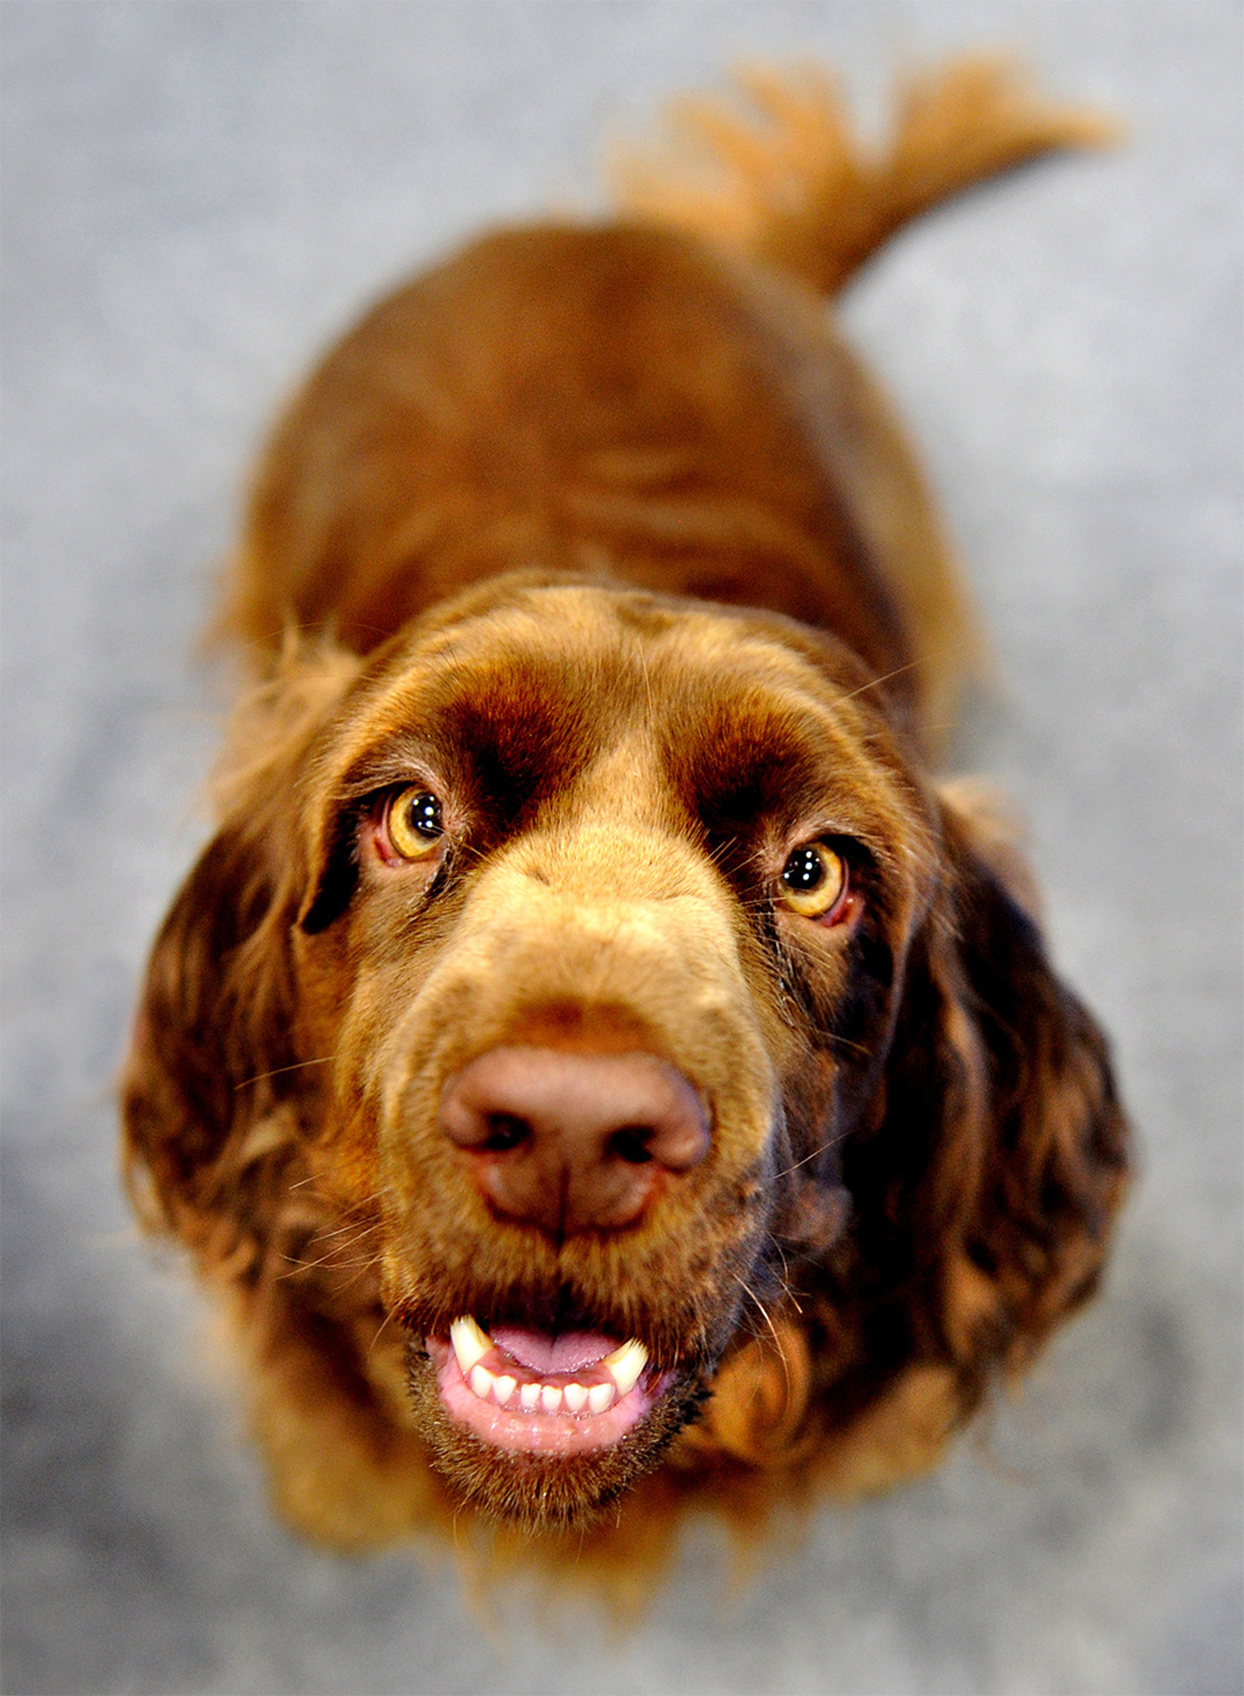 sussex spaniel dog looking up